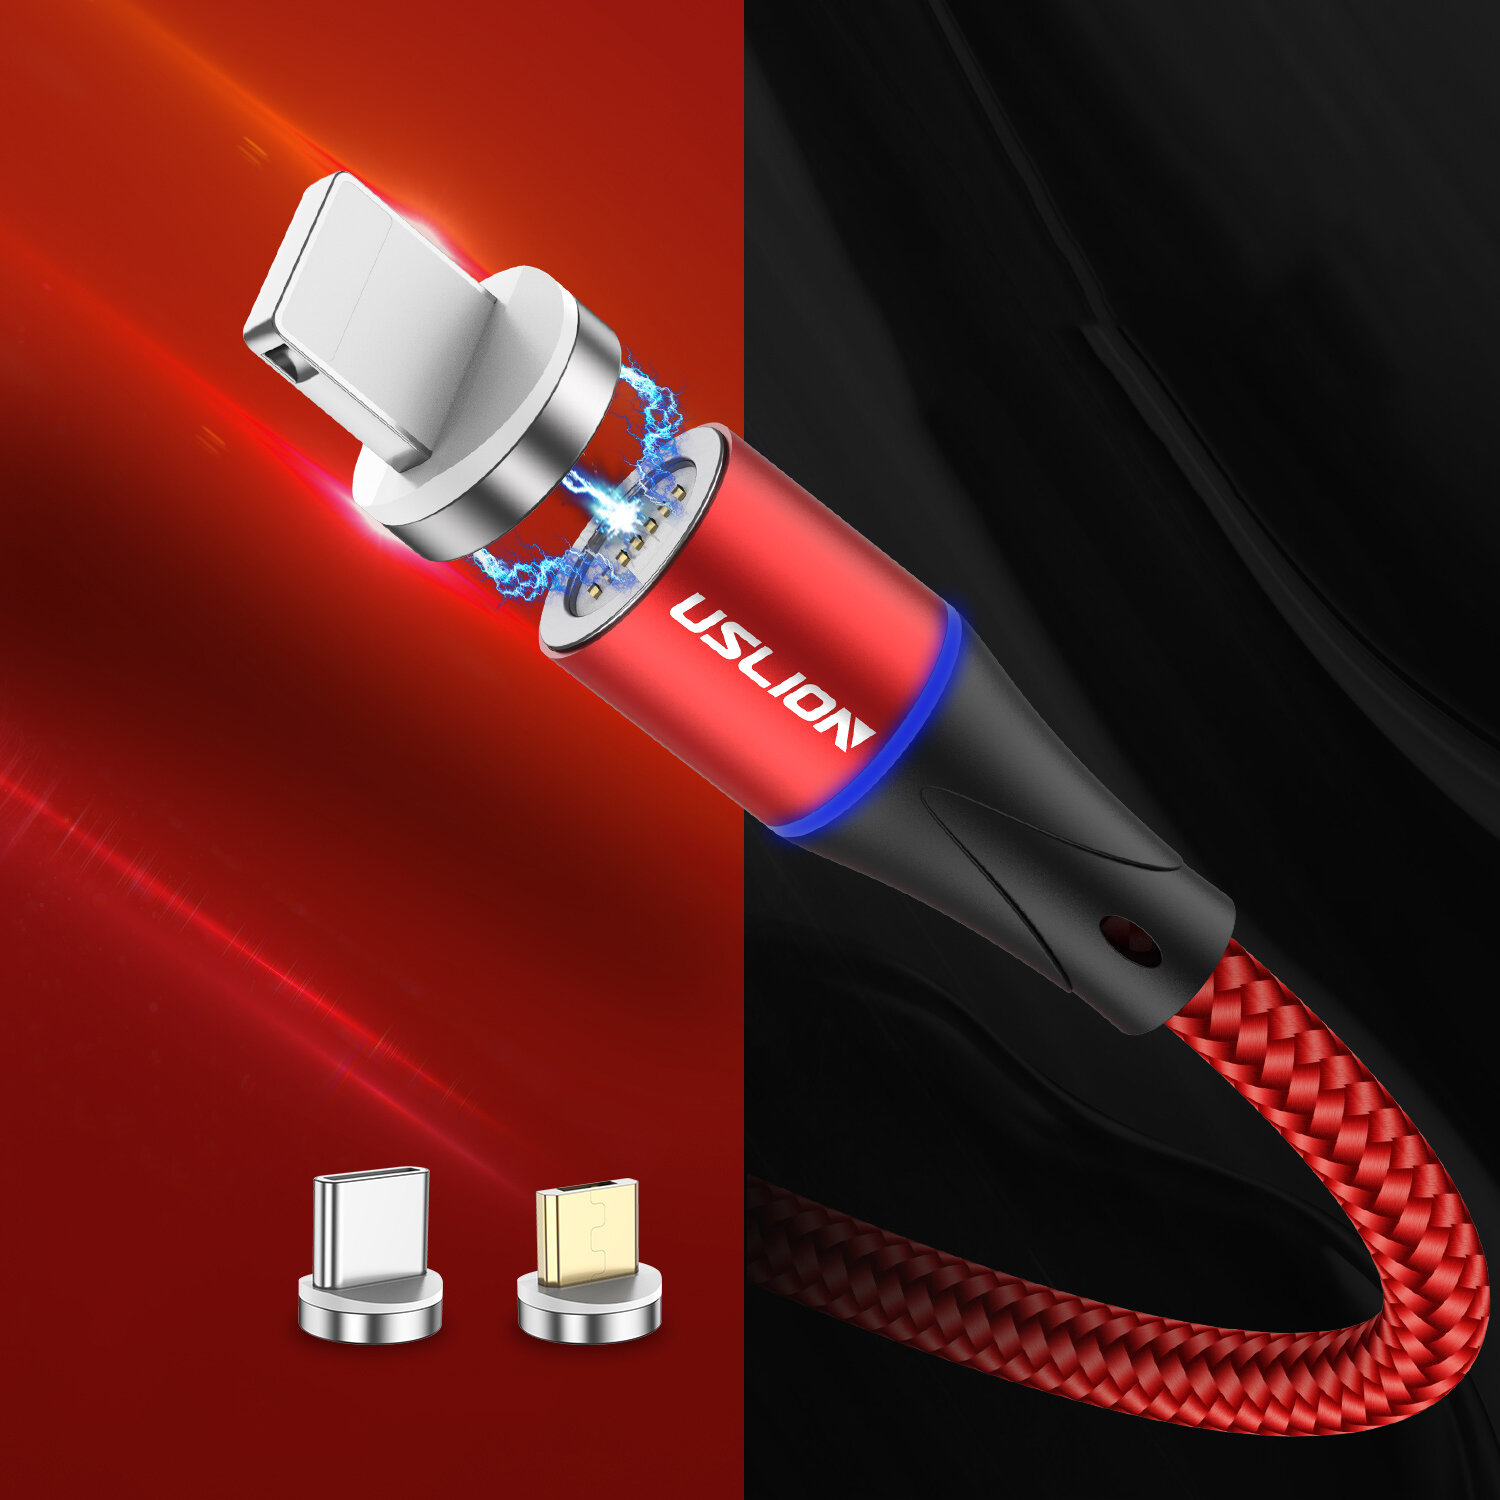 TOPK D-Line1 3A QC3.0 Voltage Current Display Type C Fast Charging Data Cable 1M For Phone Tablet - 8